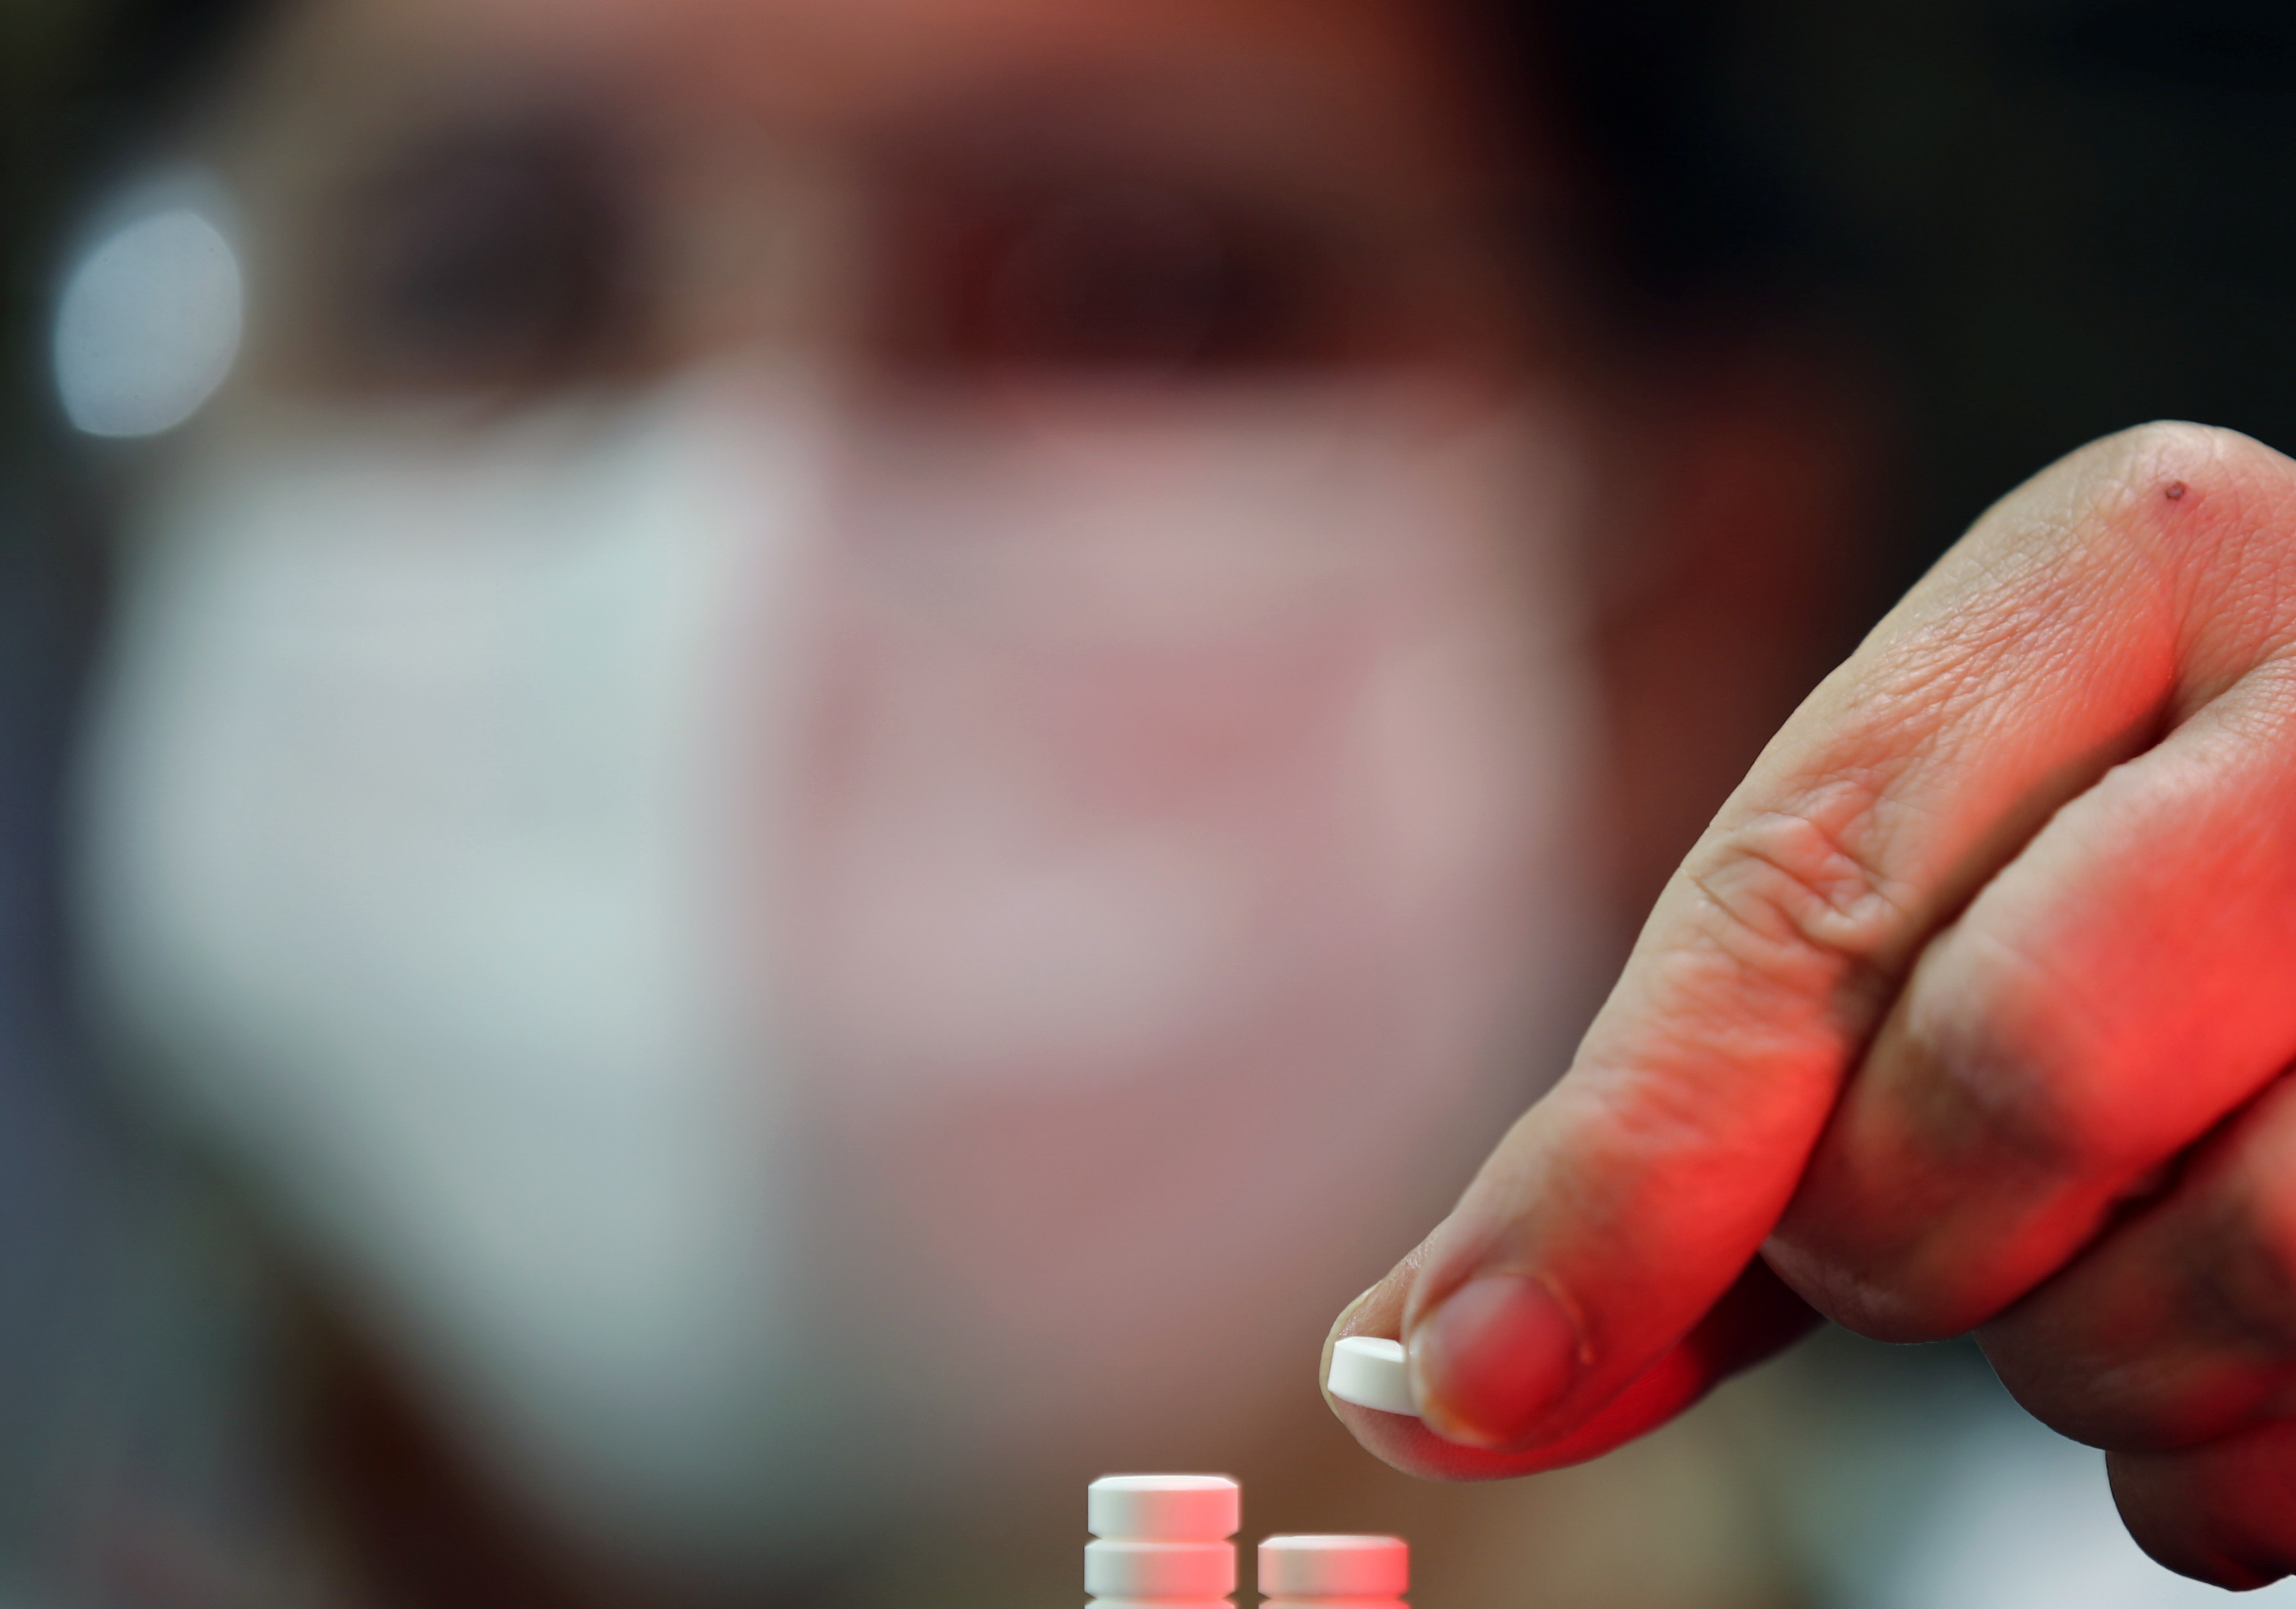 A health worker checks chloroquine pills distributed by the Ministry of Health at the pharmacy of the Nossa Senhora da Conceicao hospital, amid the coronavirus disease (COVID-19) outbreak in Porto Alegre, Brazil, May 26, 2020. REUTERS/Diego Vara